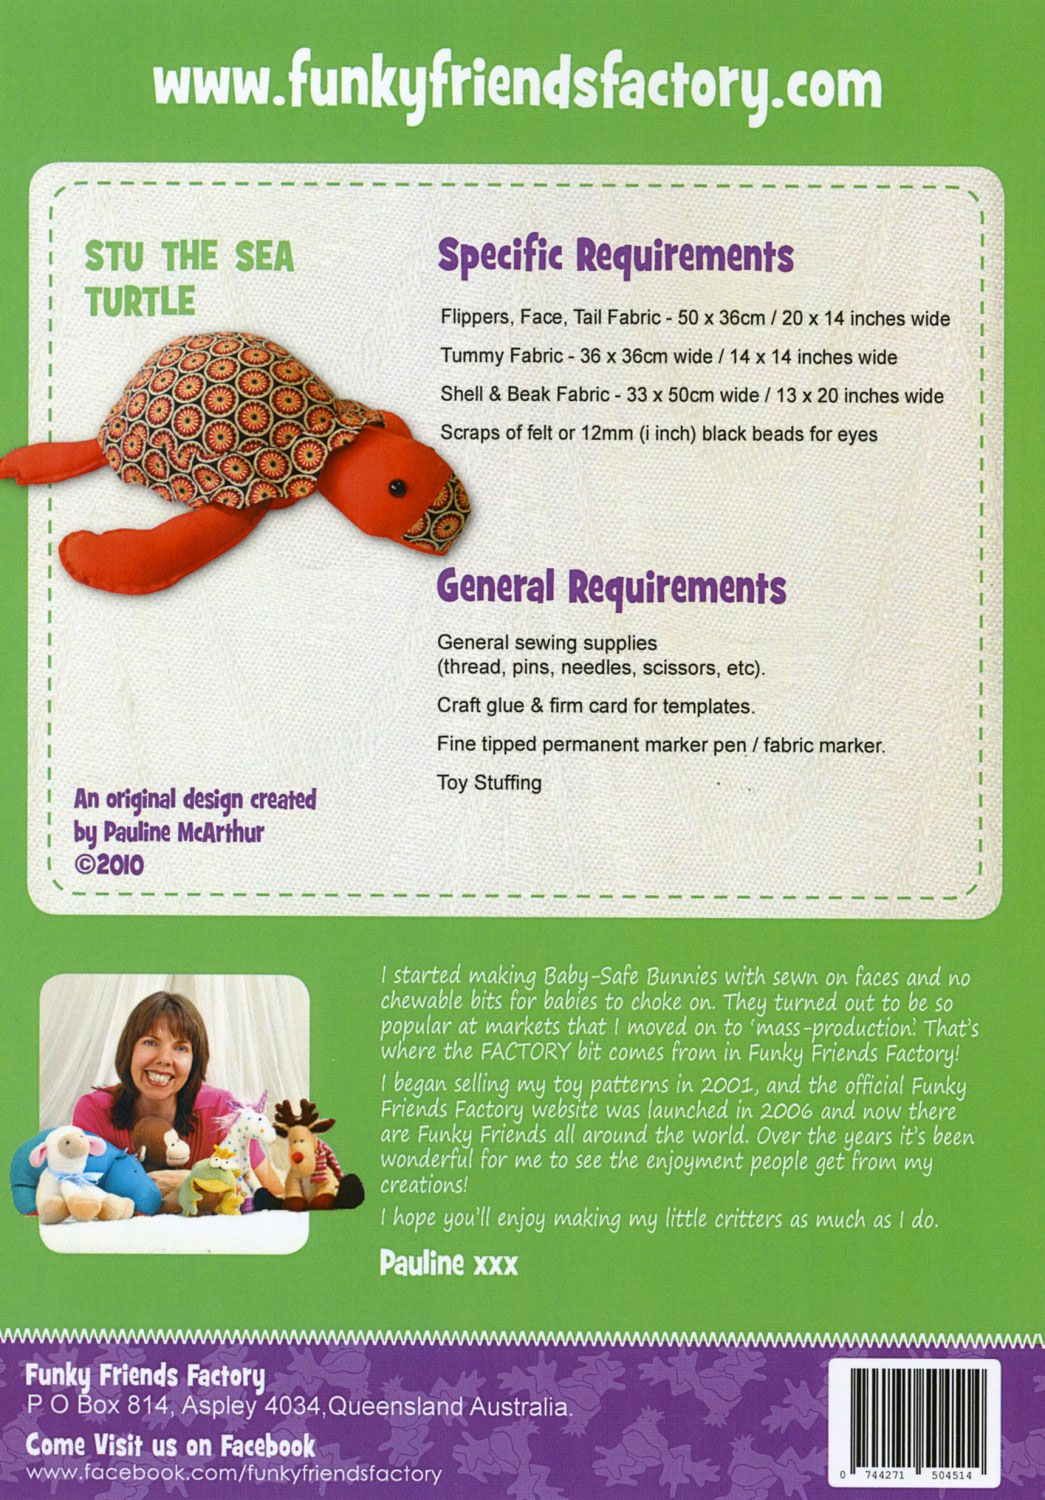 Stue-the-Sea-Turtle-sewing-pattern-Funky-Friends-Factory-back